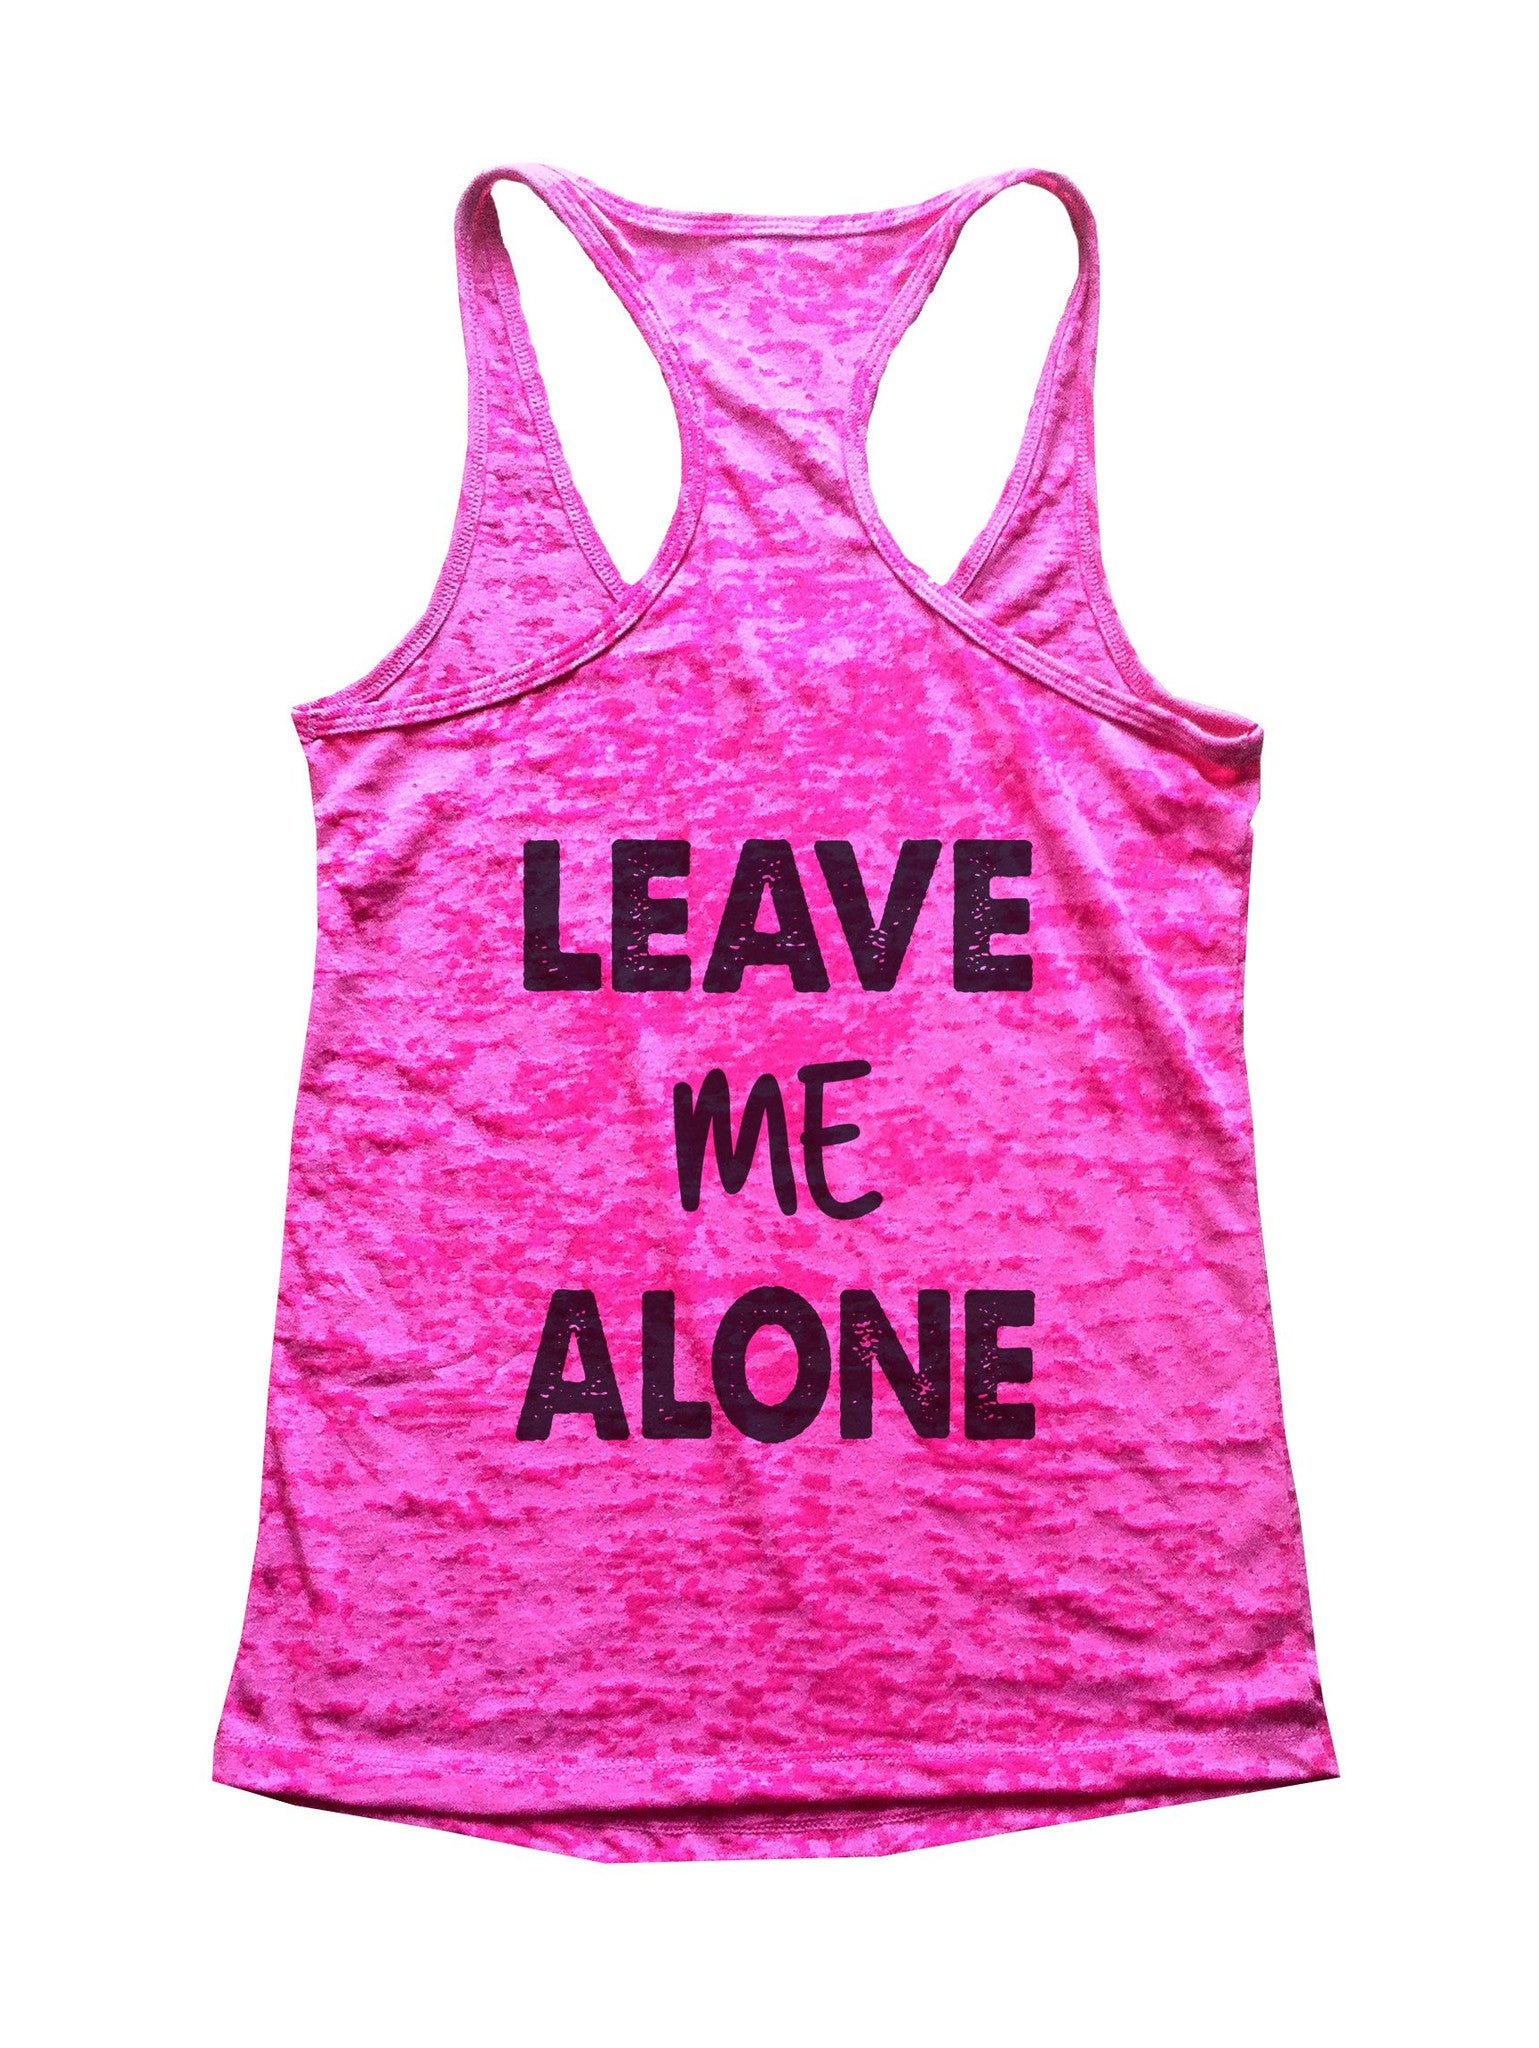 Leave Me Alone Burnout Tank Top By BurnoutTankTops.com - B24 - Funny Shirts Tank Tops Burnouts and Triblends  - 2